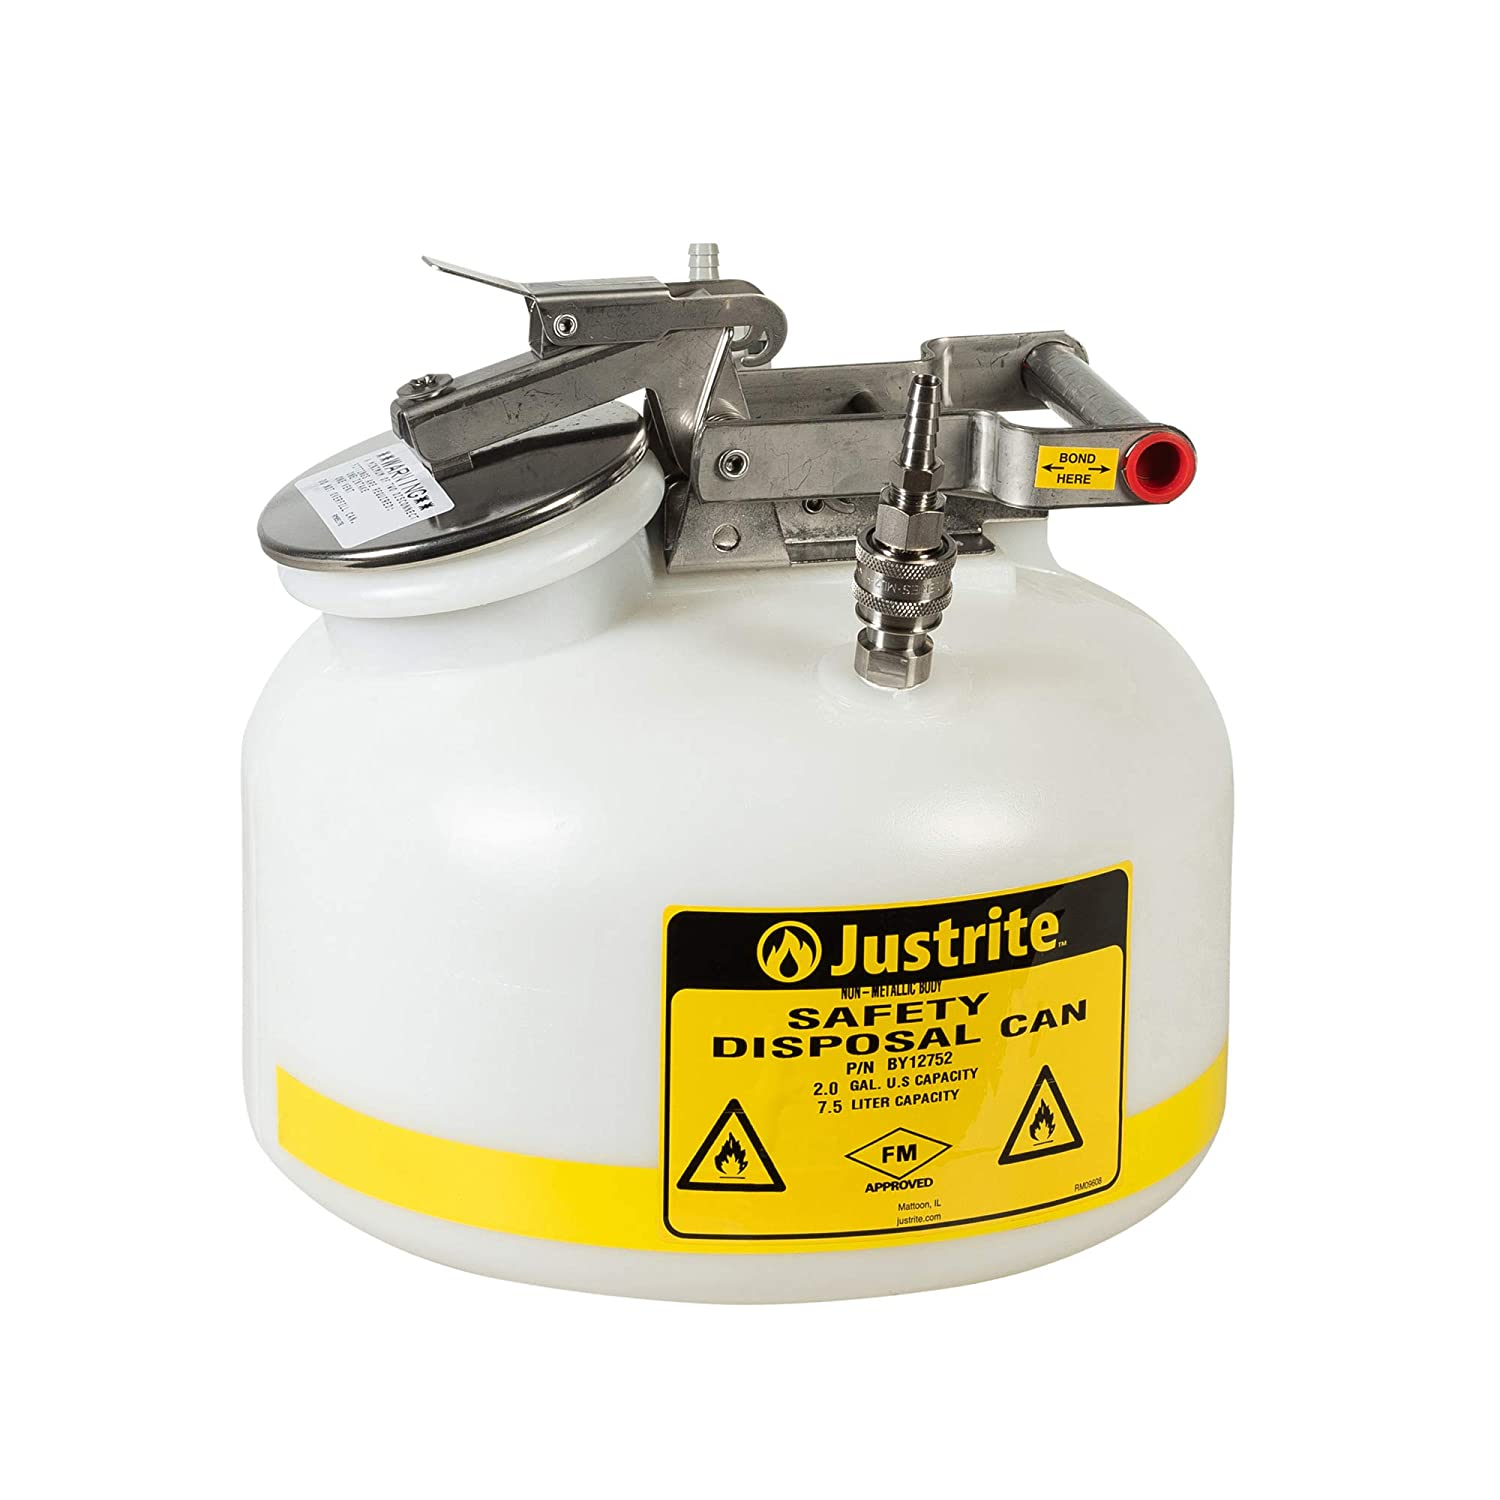 Justrite PP12752 Centura Disposal Polyethylene Prefabricated Quick-Disconnect Safety Can with Polypropylene Fitting, 2 Gallon Capacity